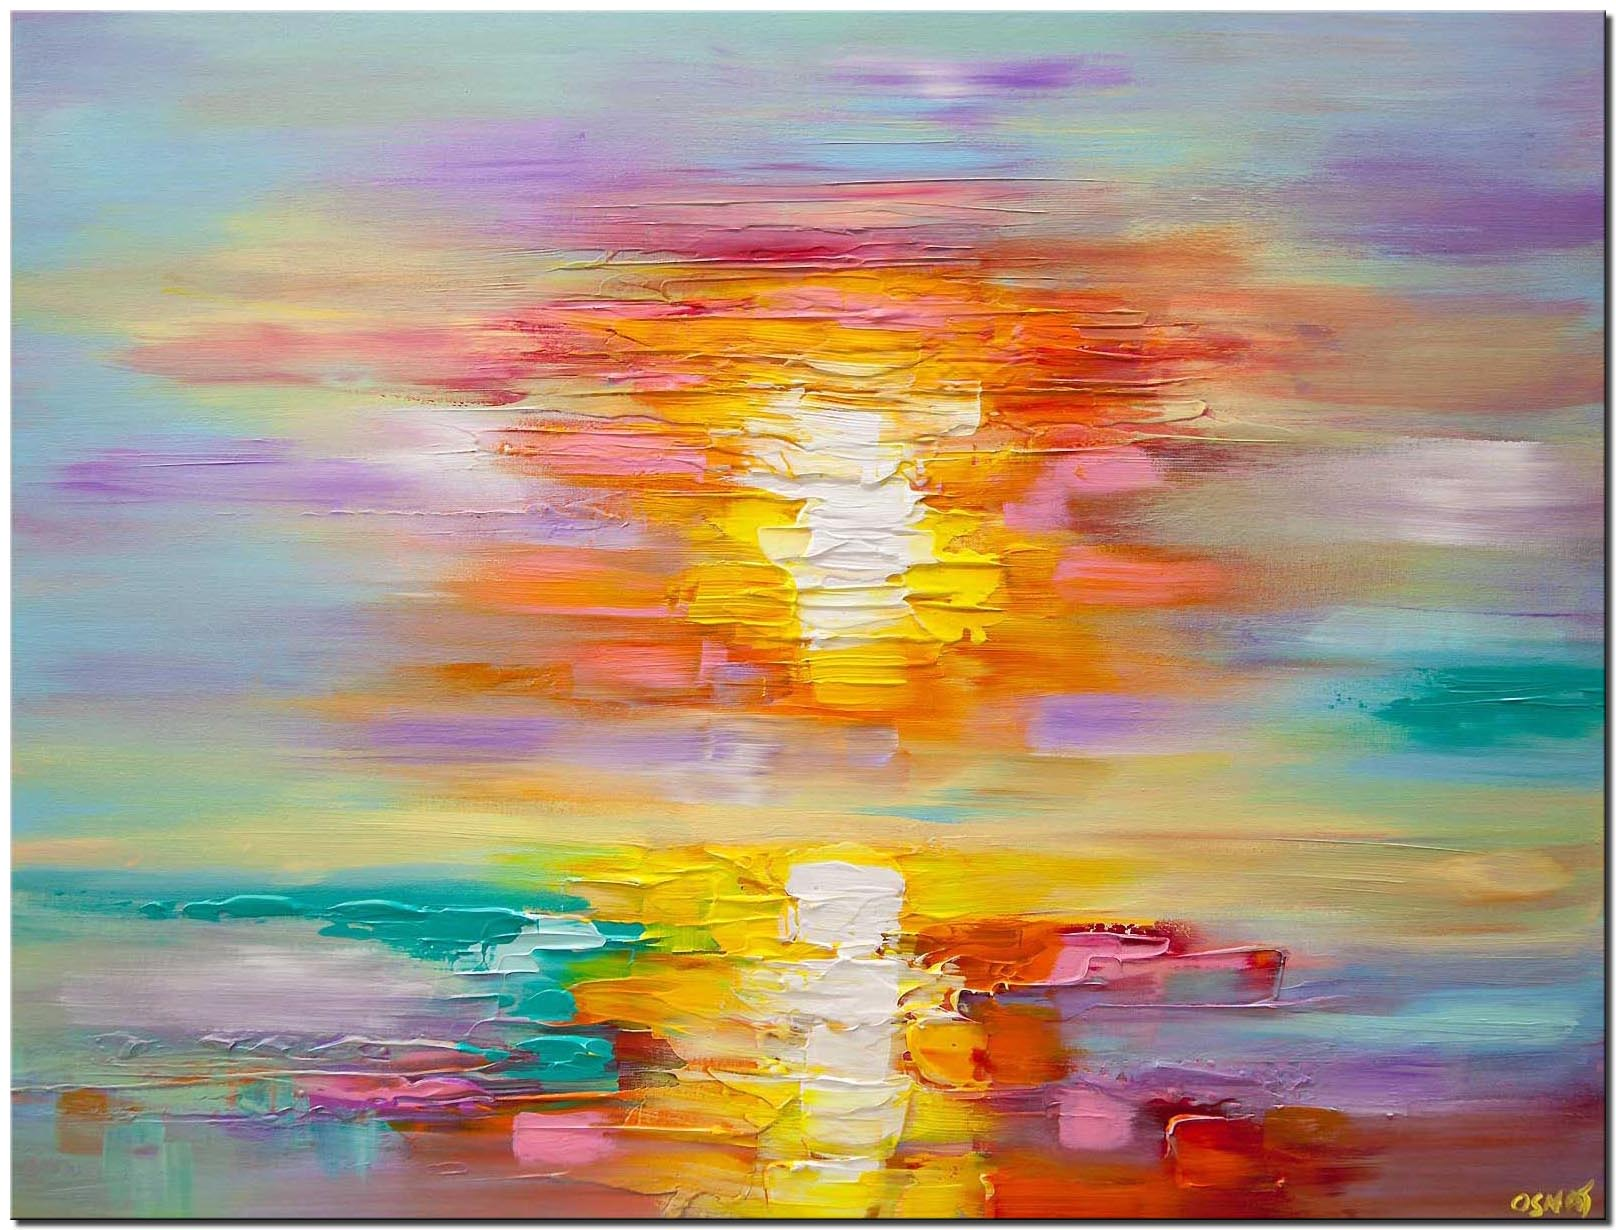 canvas print of textured abstract sunrise painting